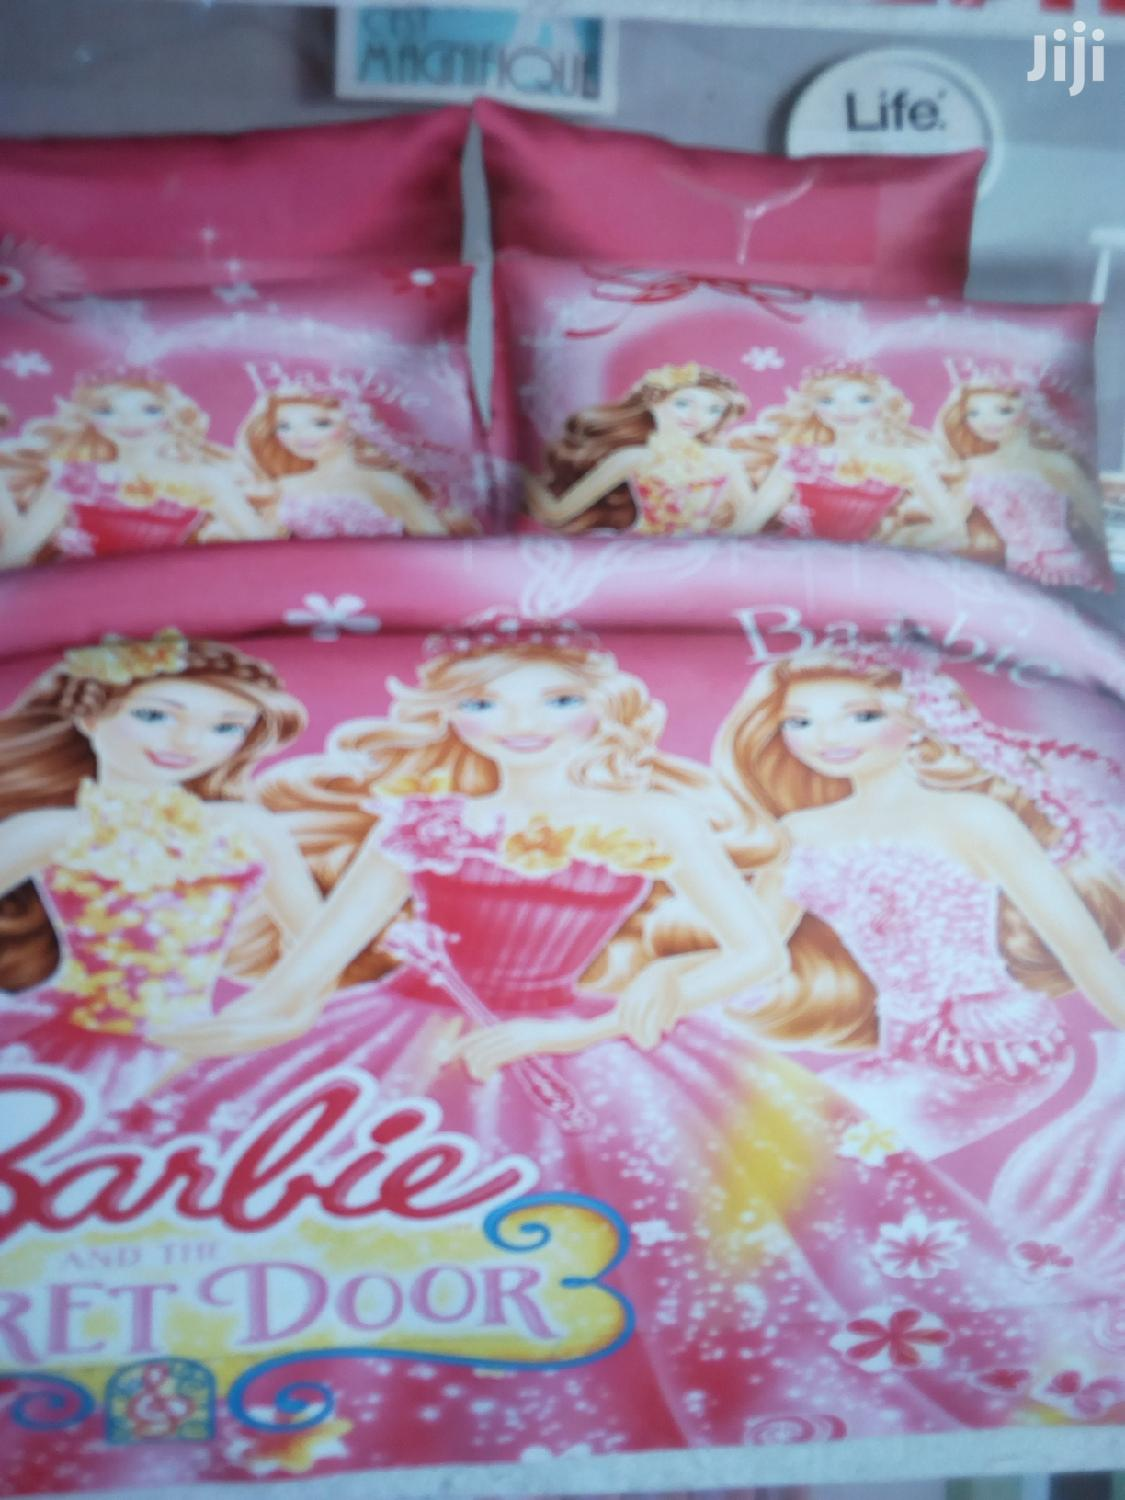 Cartoons Duvets With A Matching Bed Sheet And Two Pillow Cases